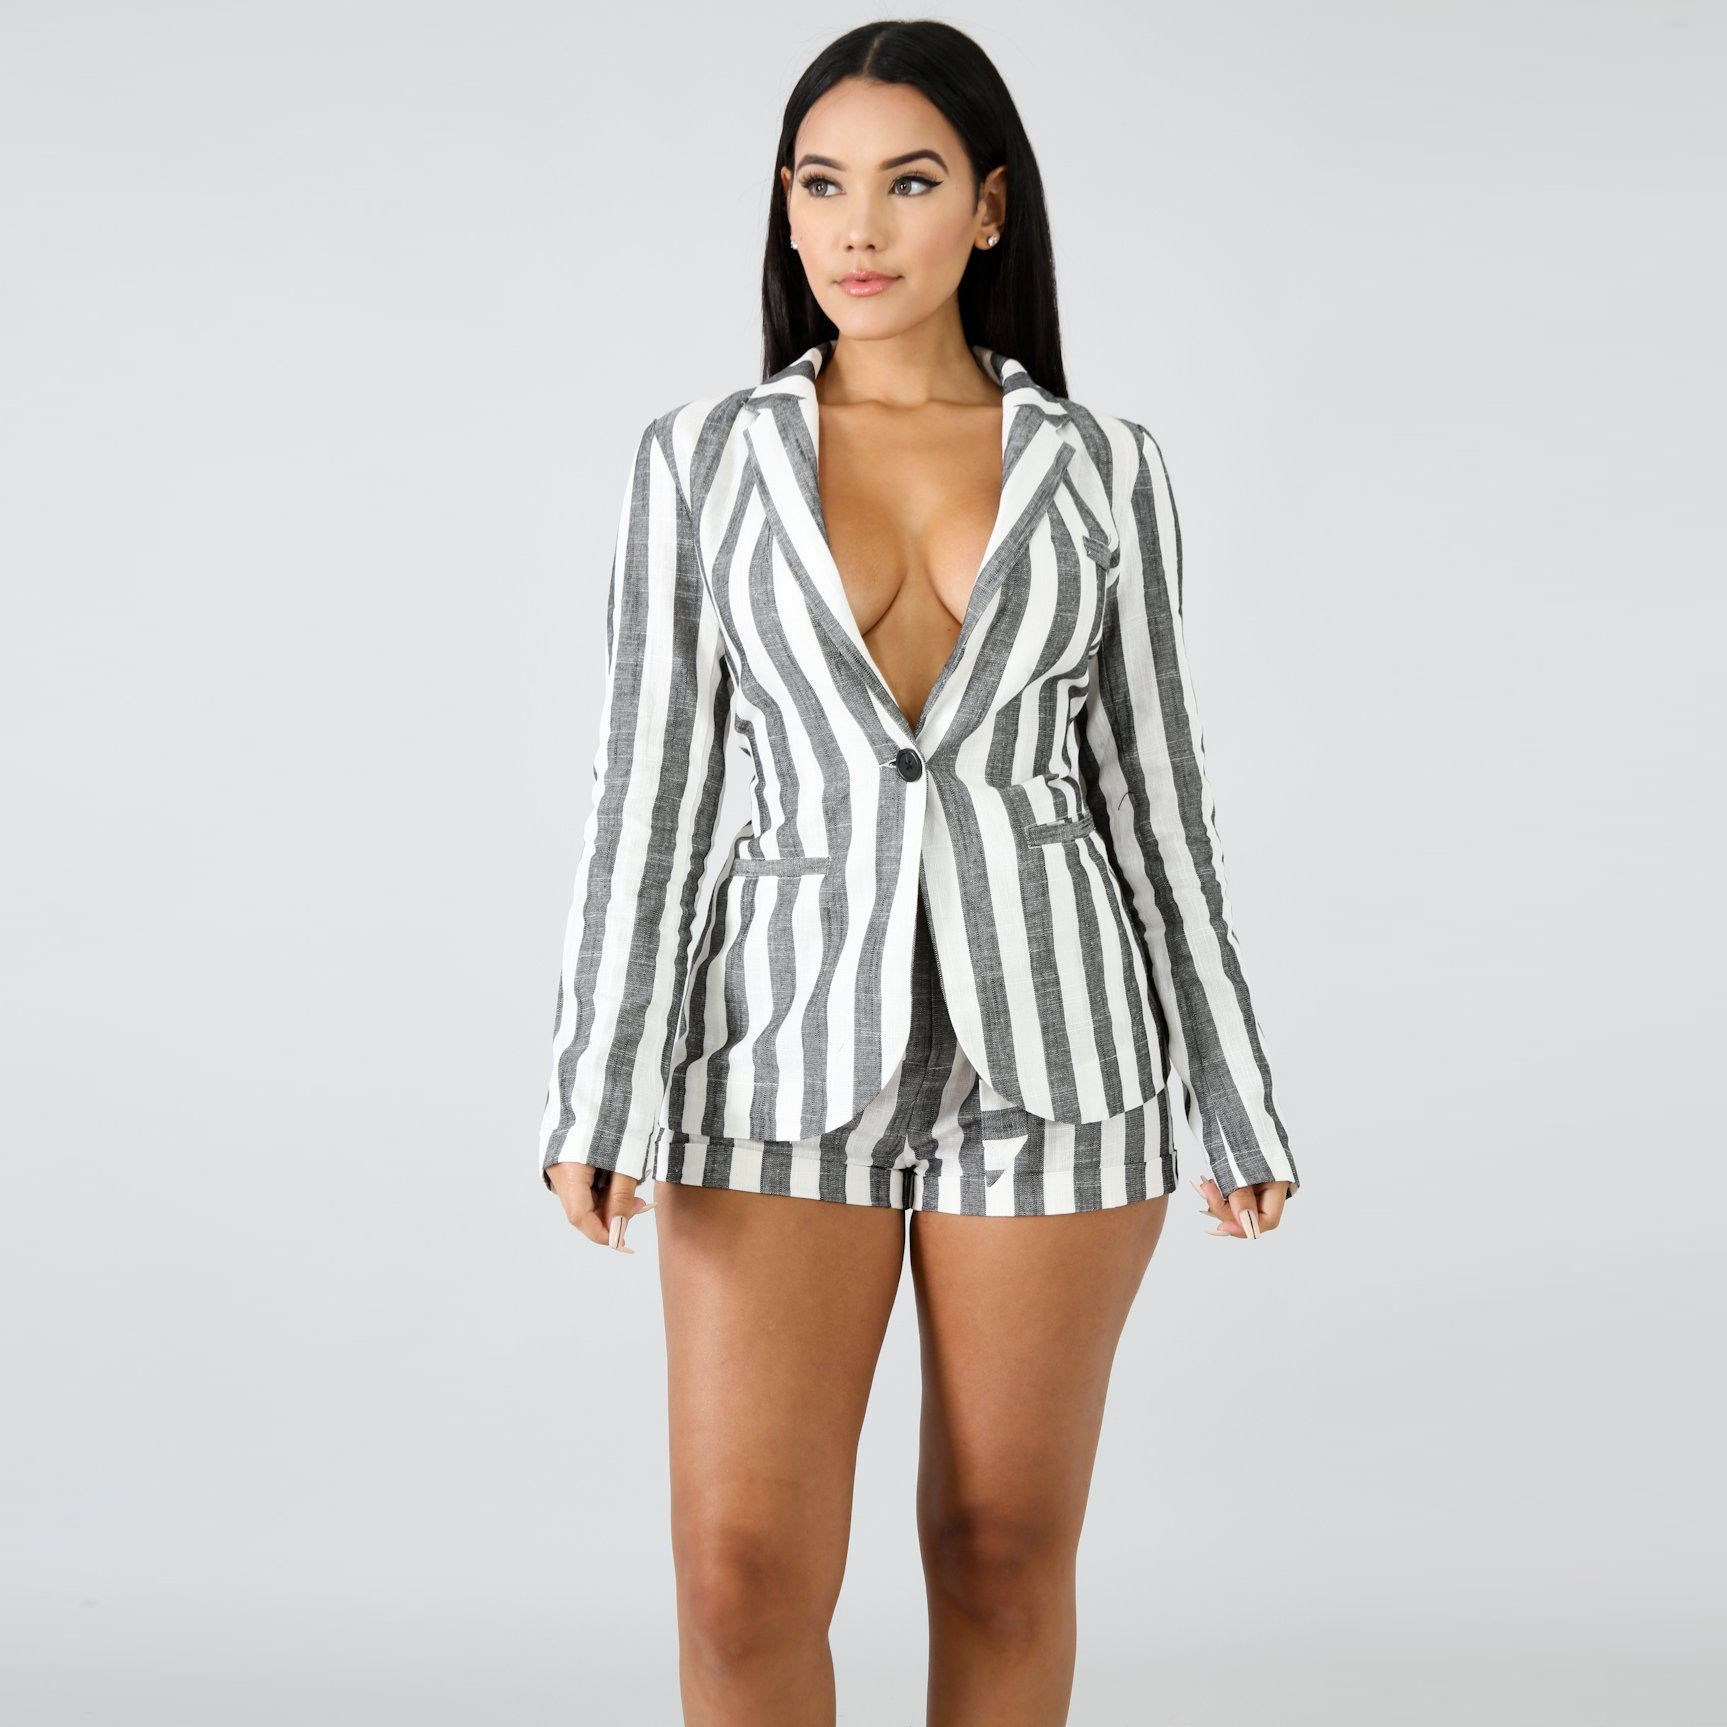 Women Sexy Striped Blazer Jacket and Shorts Two Piece Set Turn Down Collar Blazer Coat Pocket Shorts Suit Work Matching Outfits in Women 39 s Sets from Women 39 s Clothing